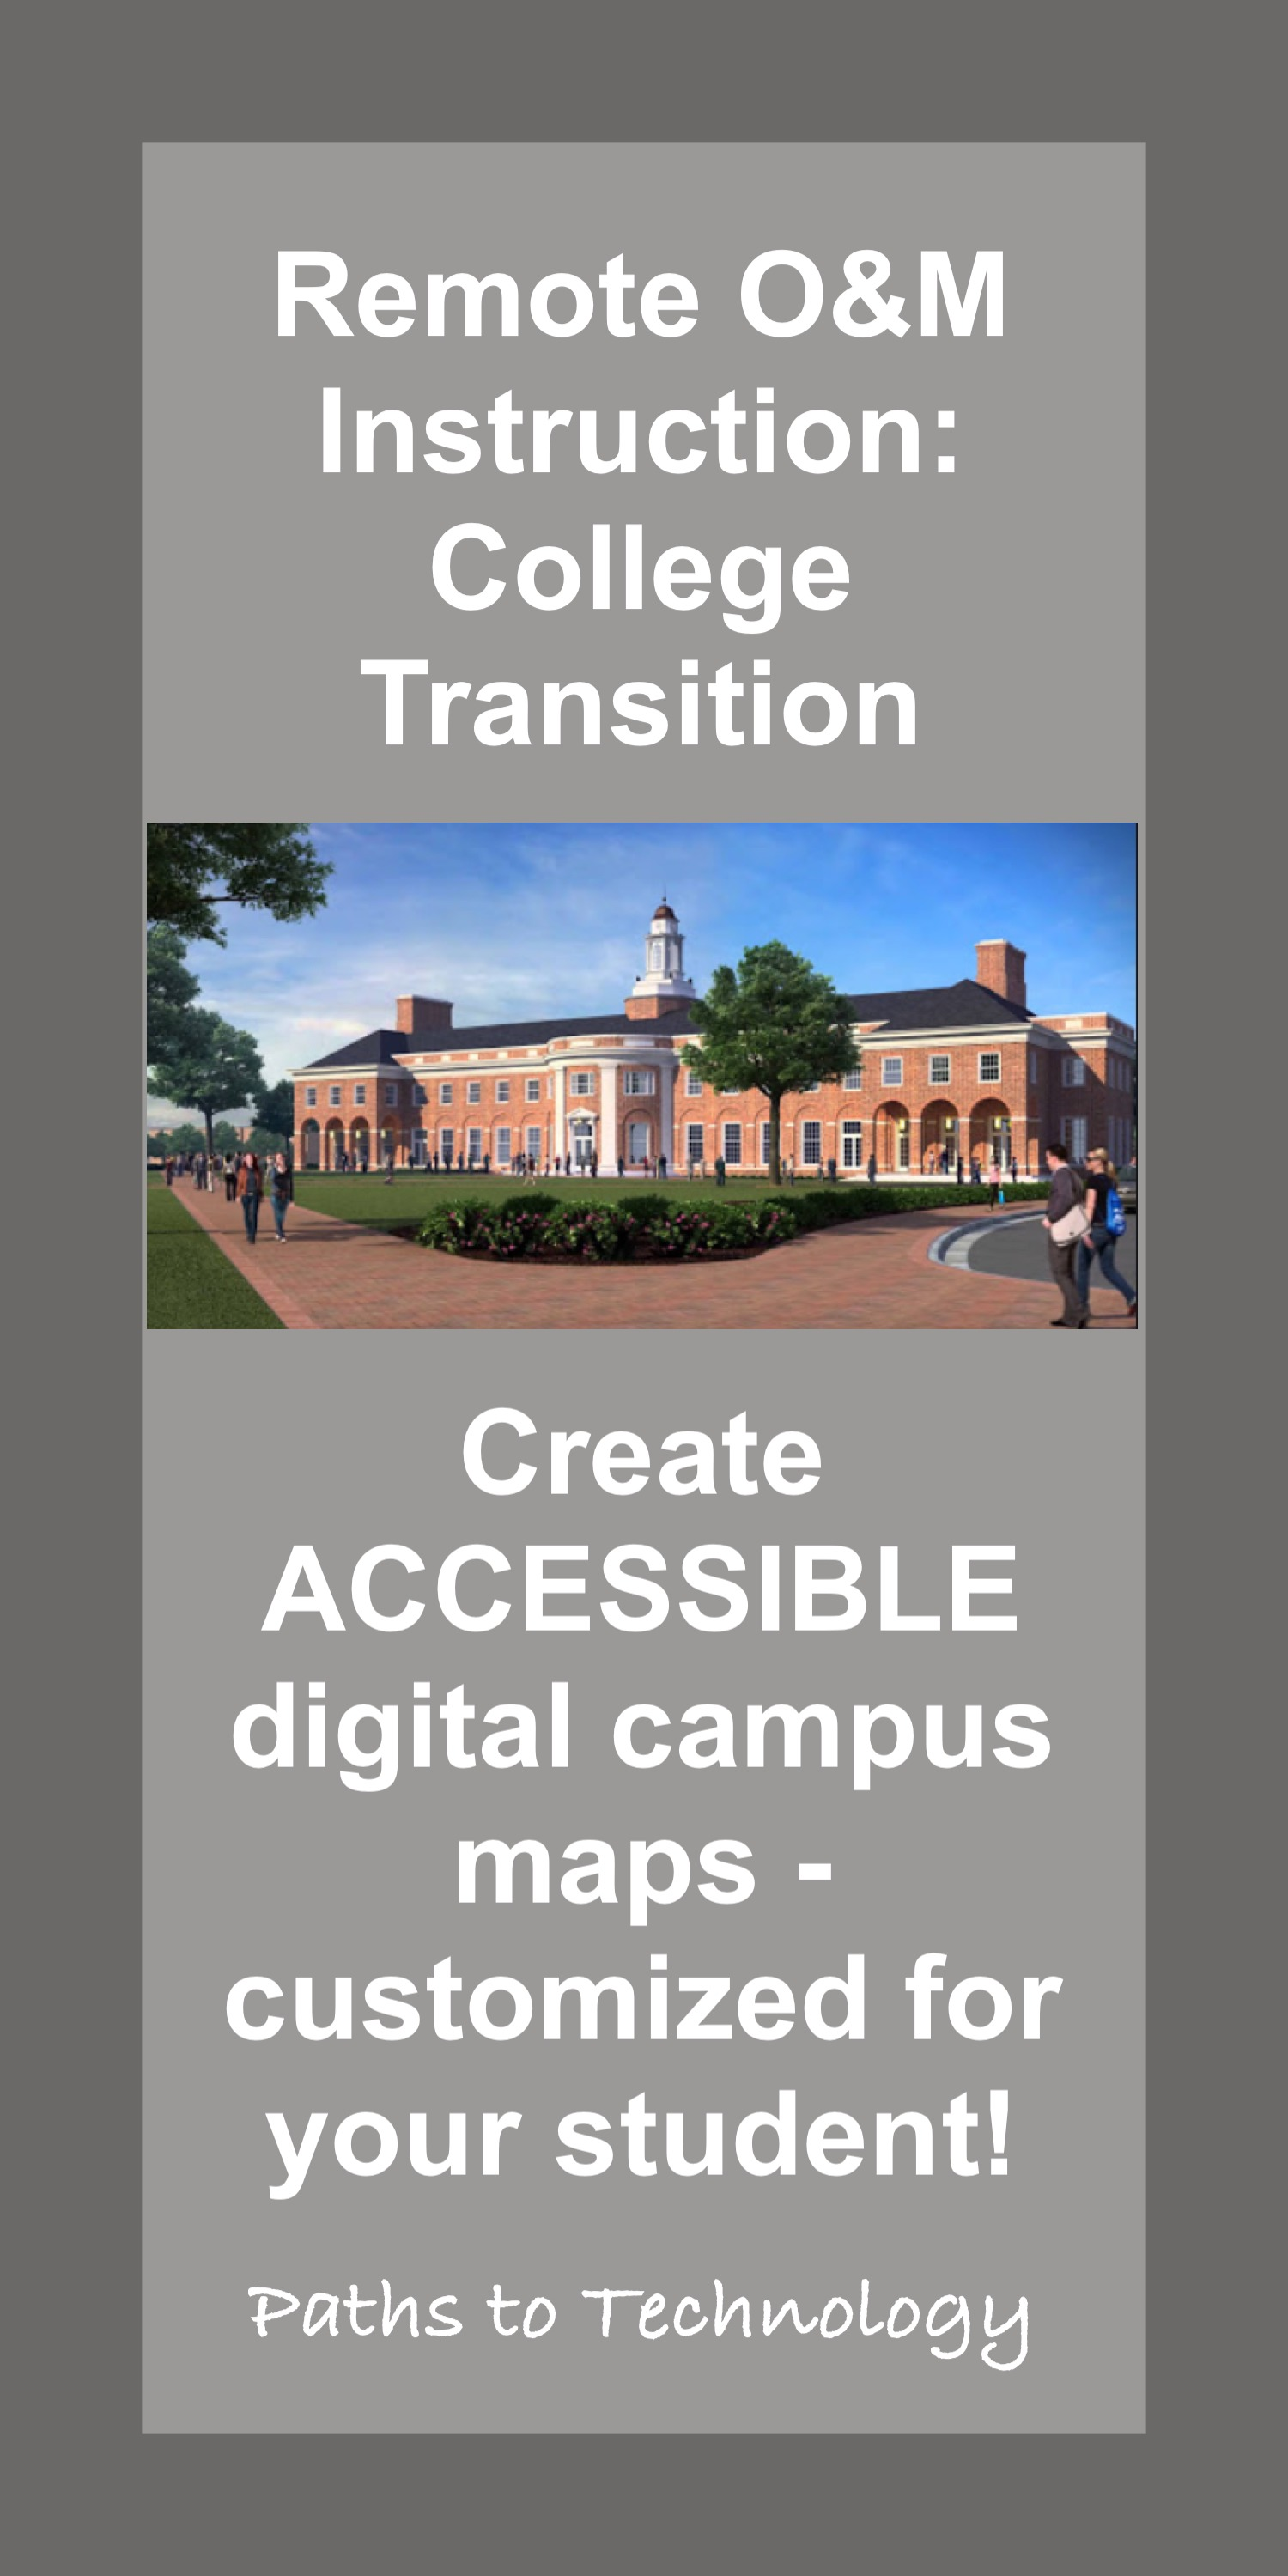 Remote O&M Instruction: College Transition